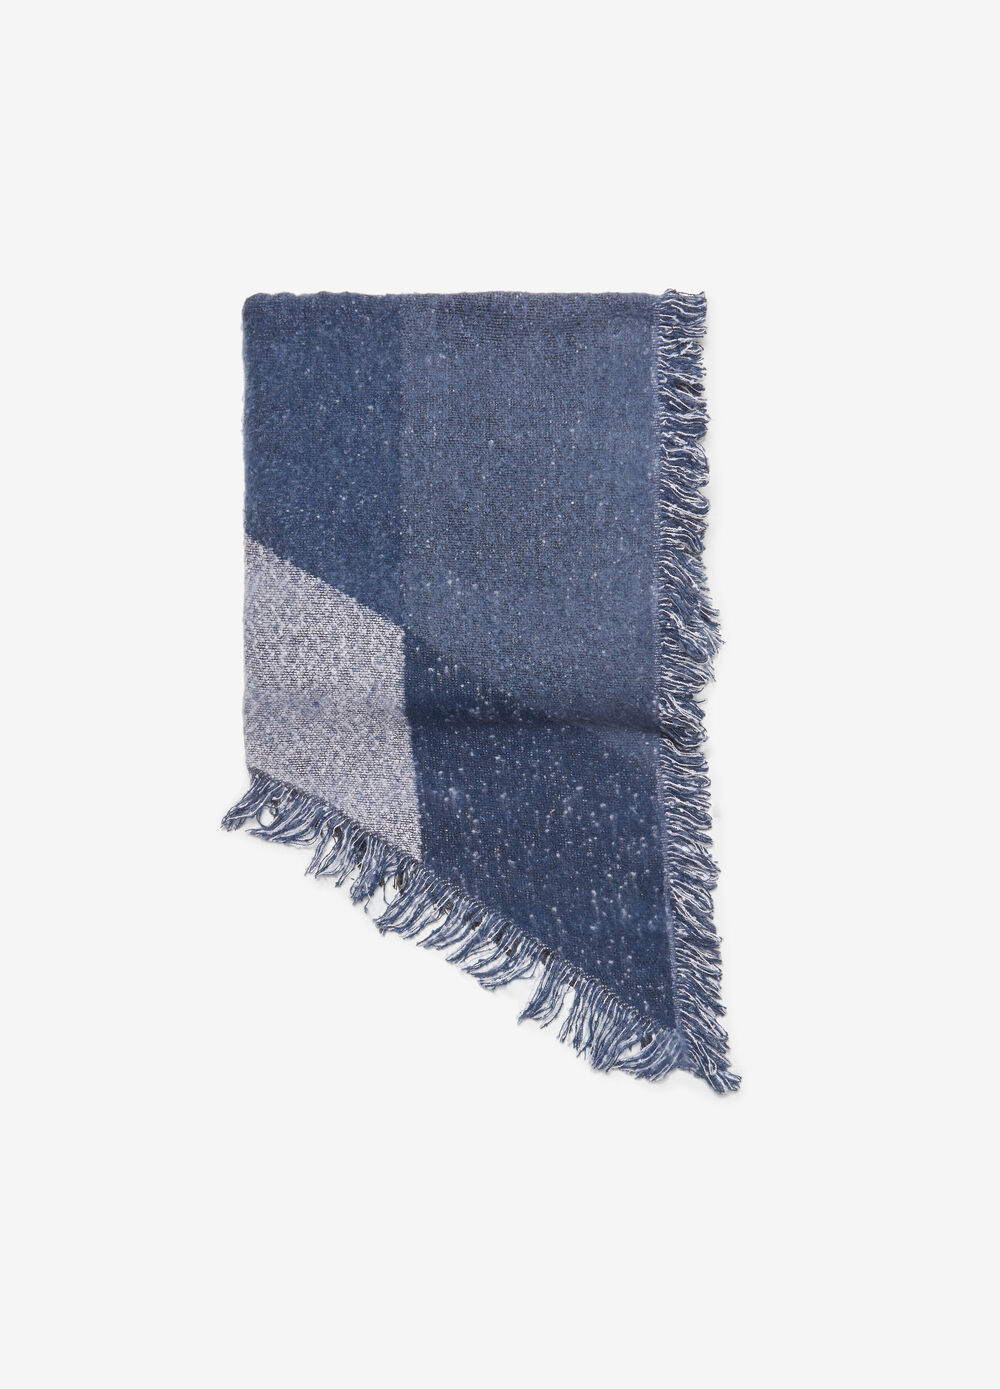 Rectangular maxi scarf with check pattern